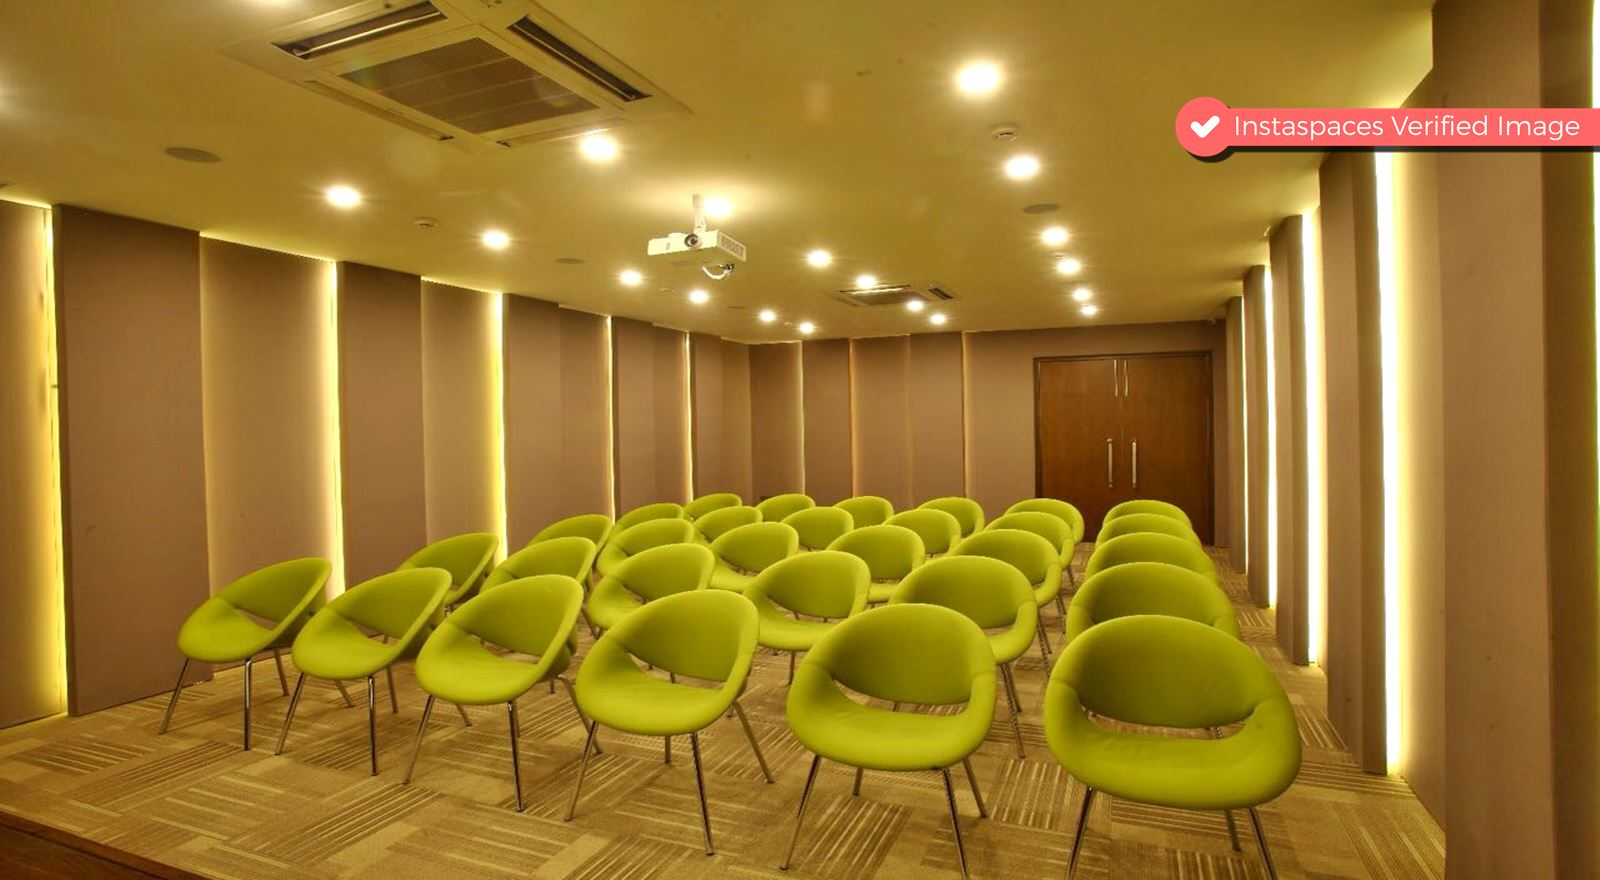 Posh 50 Seater Training Room near Connaught Place